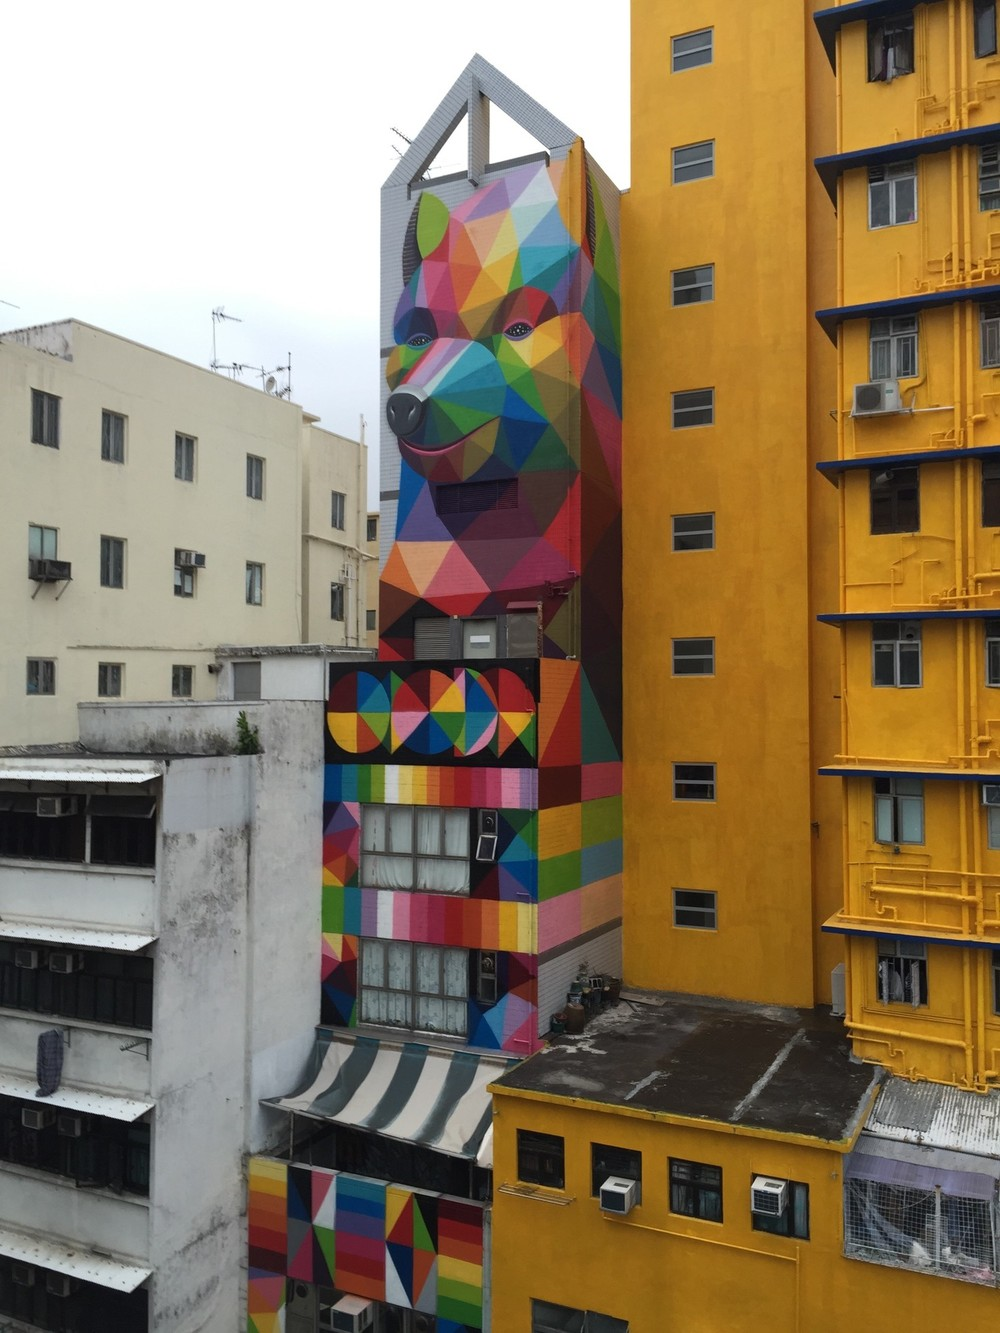 street art| rainbow thief by okuda san miguel